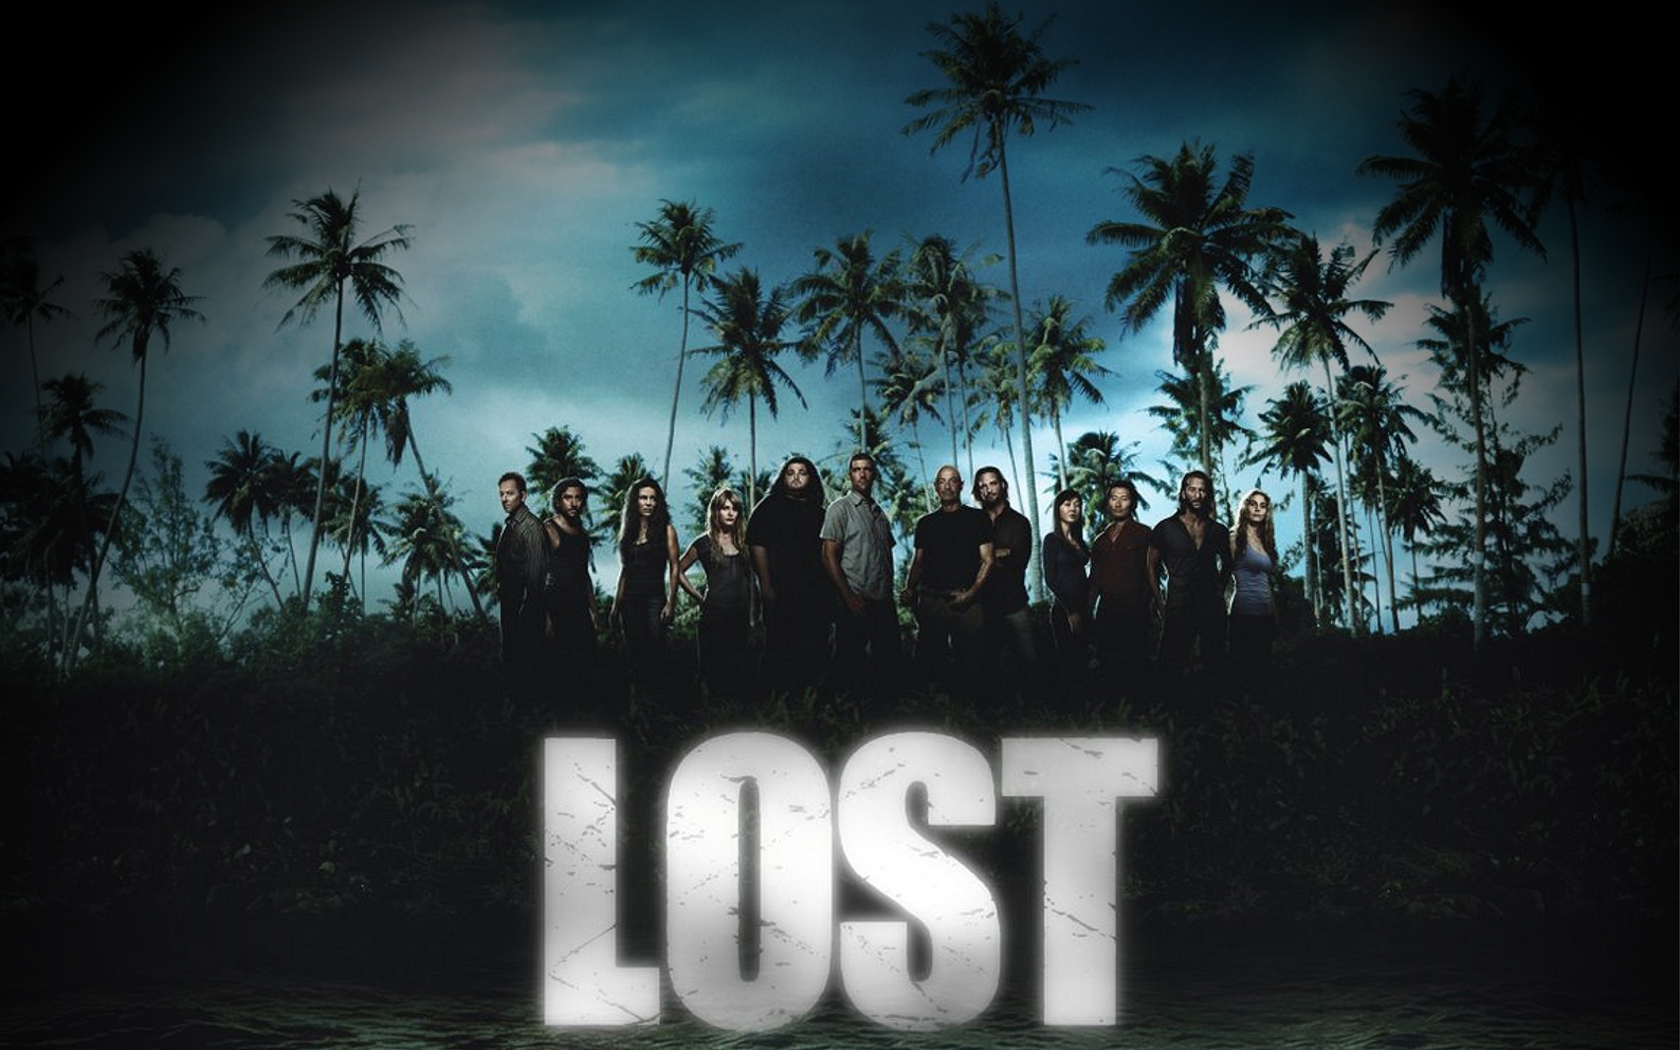 lost wallpaper hd